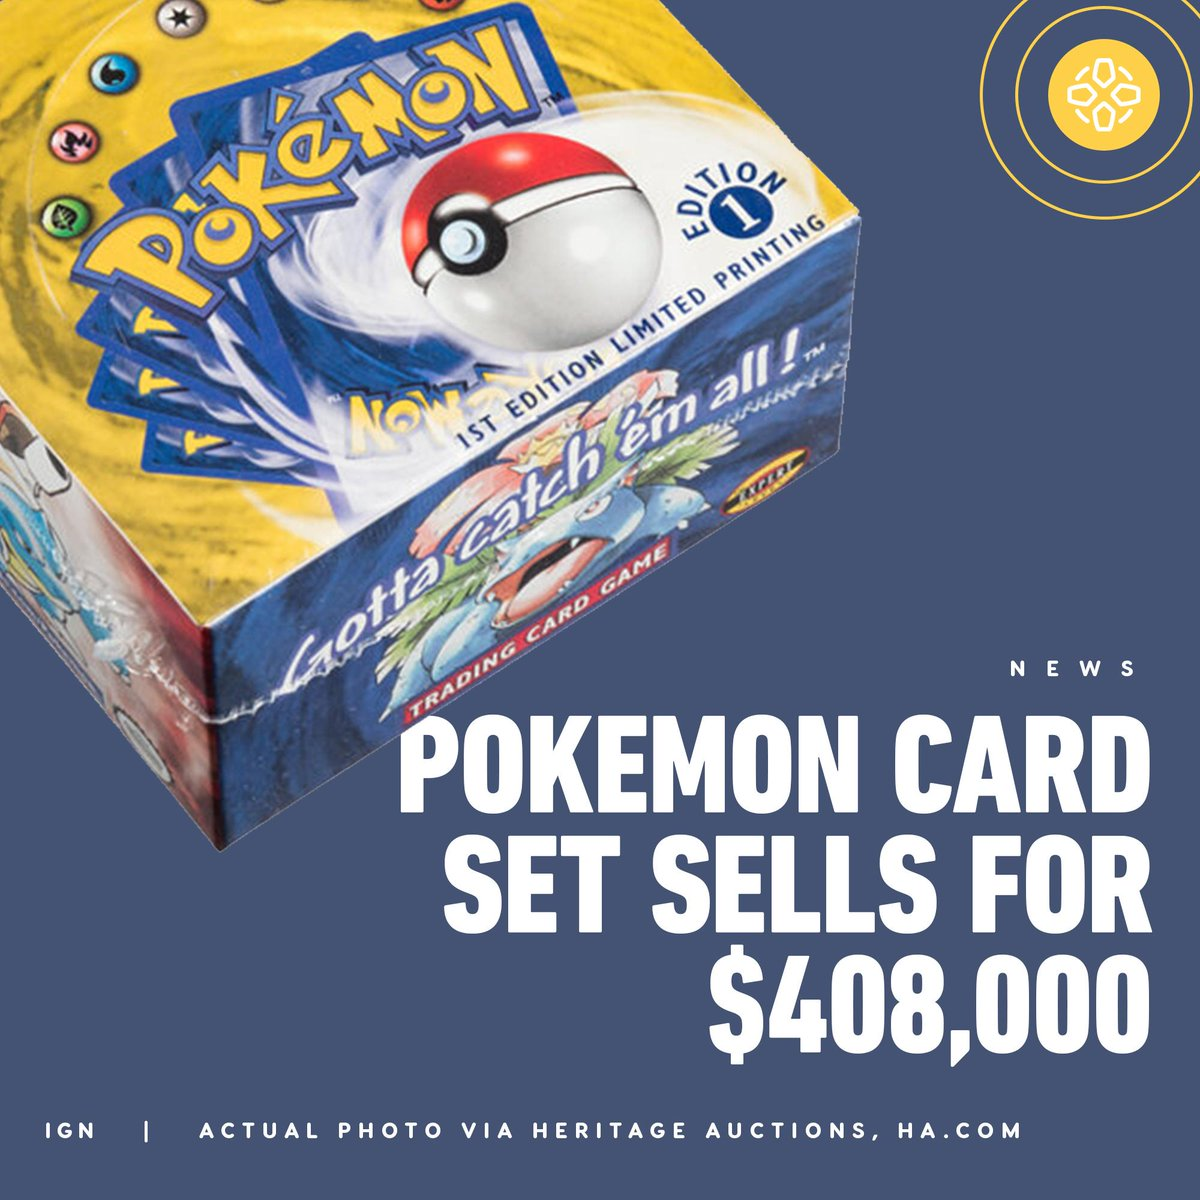 A rare Pokémon Trading First Edition Base Set from 1999 has sold at auction for a record-breaking $408,000. The box contains 396 cards in mint condition.